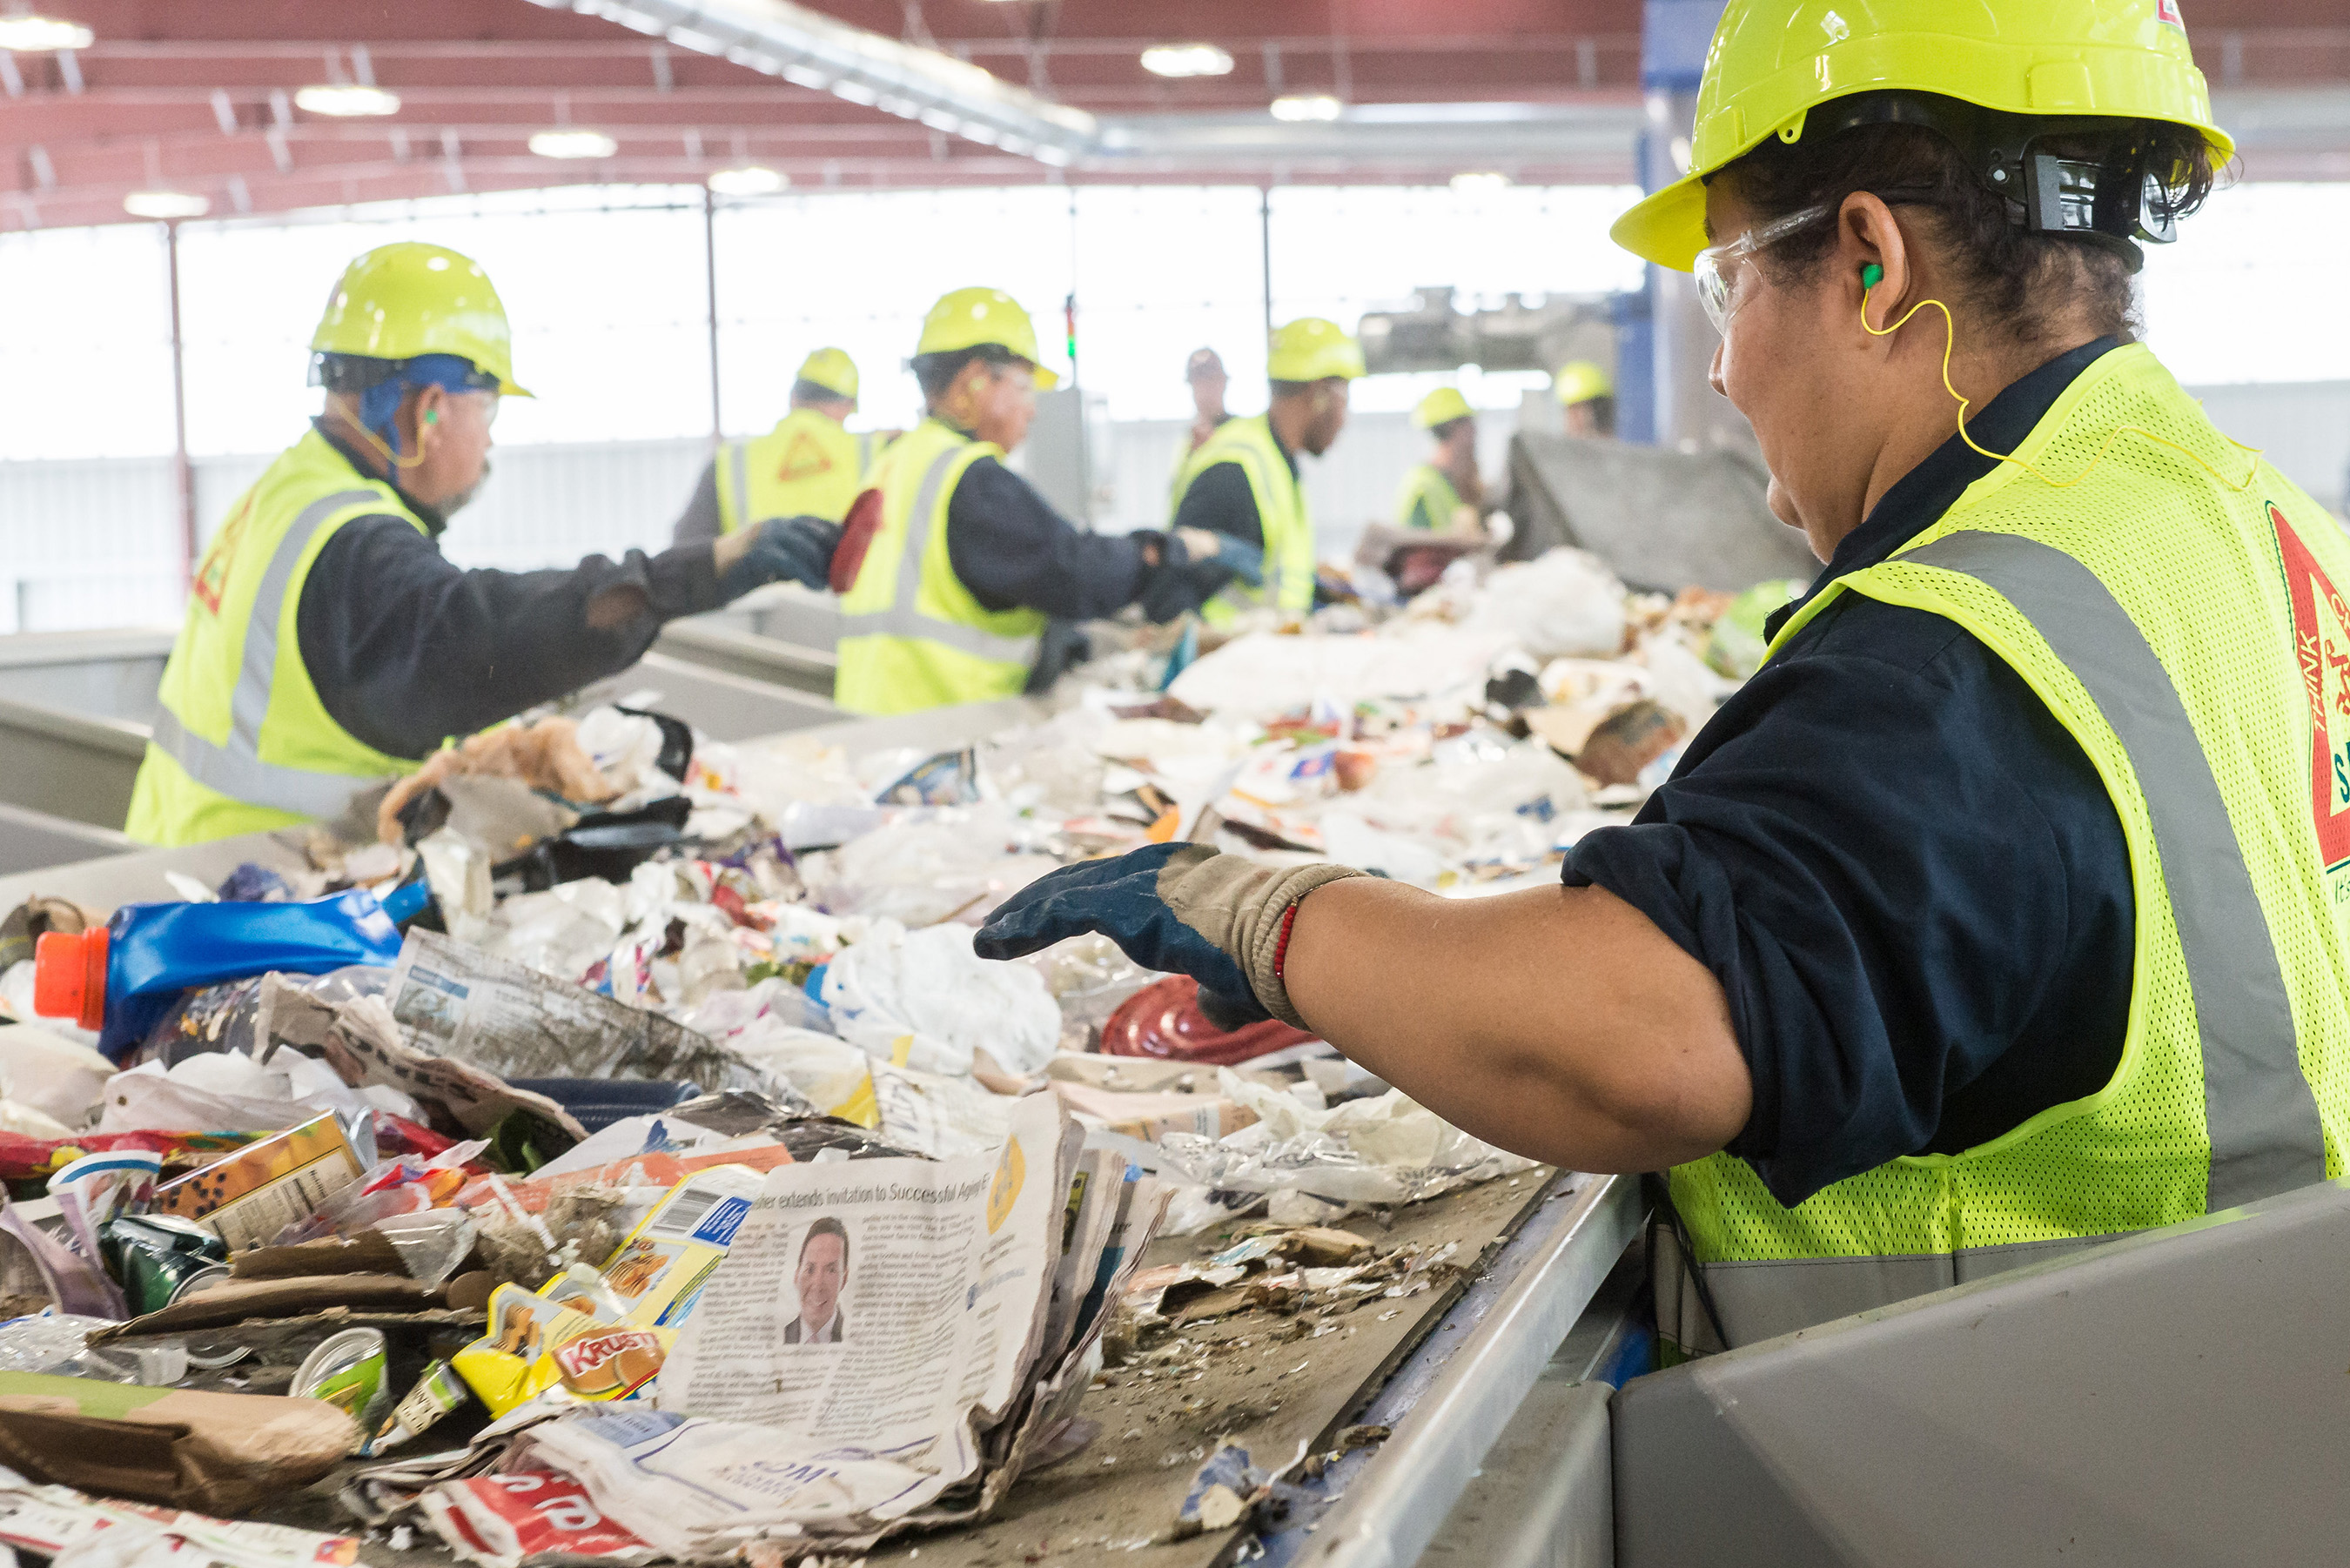 Recycled items at Republic's Southern Nevada facility can travel up to 1 mile in 2.5 min on the conveyor belt